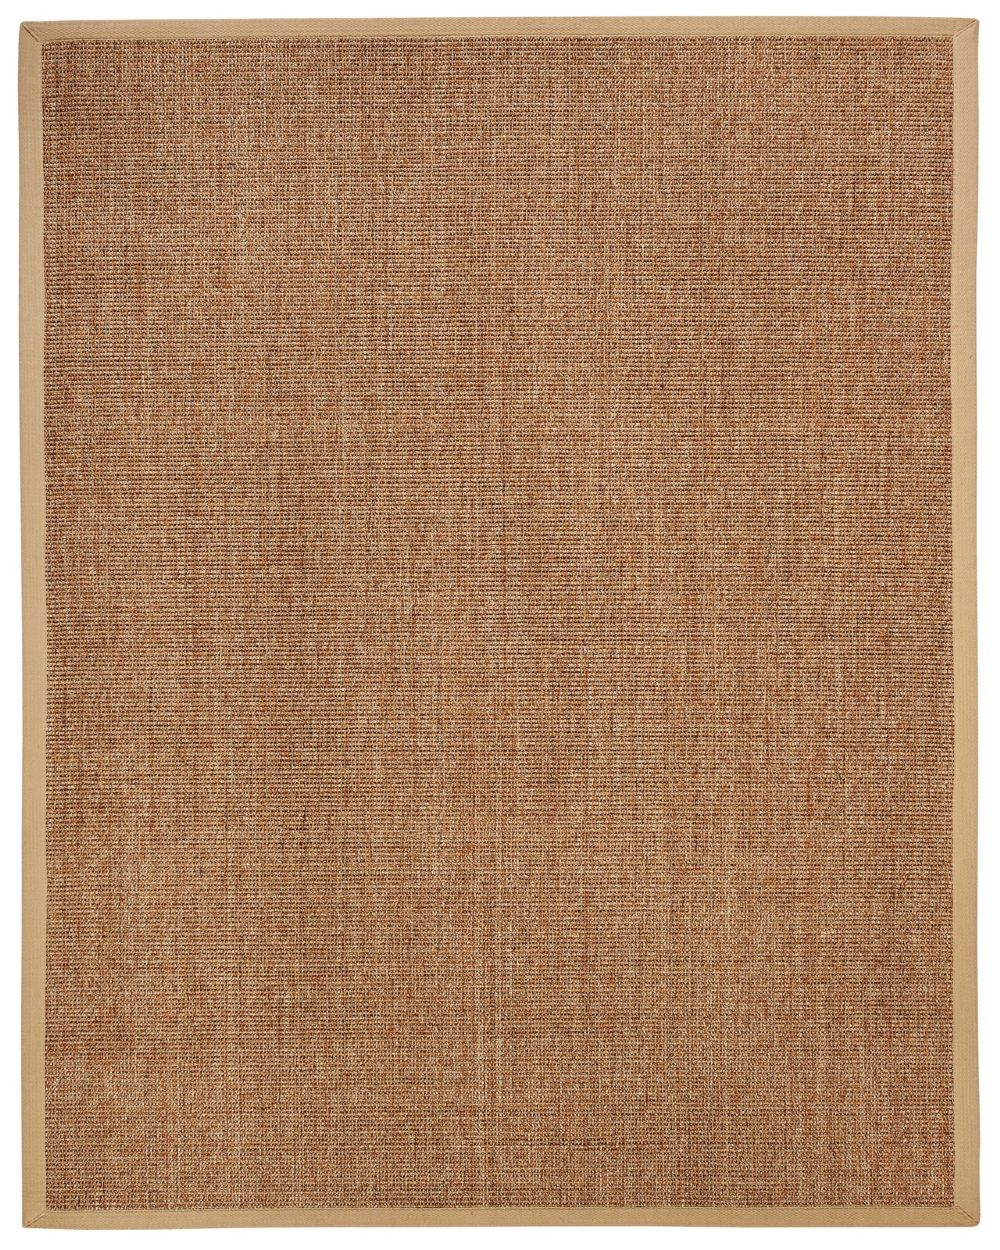 anji mountain sisal natural fiber area rug collection